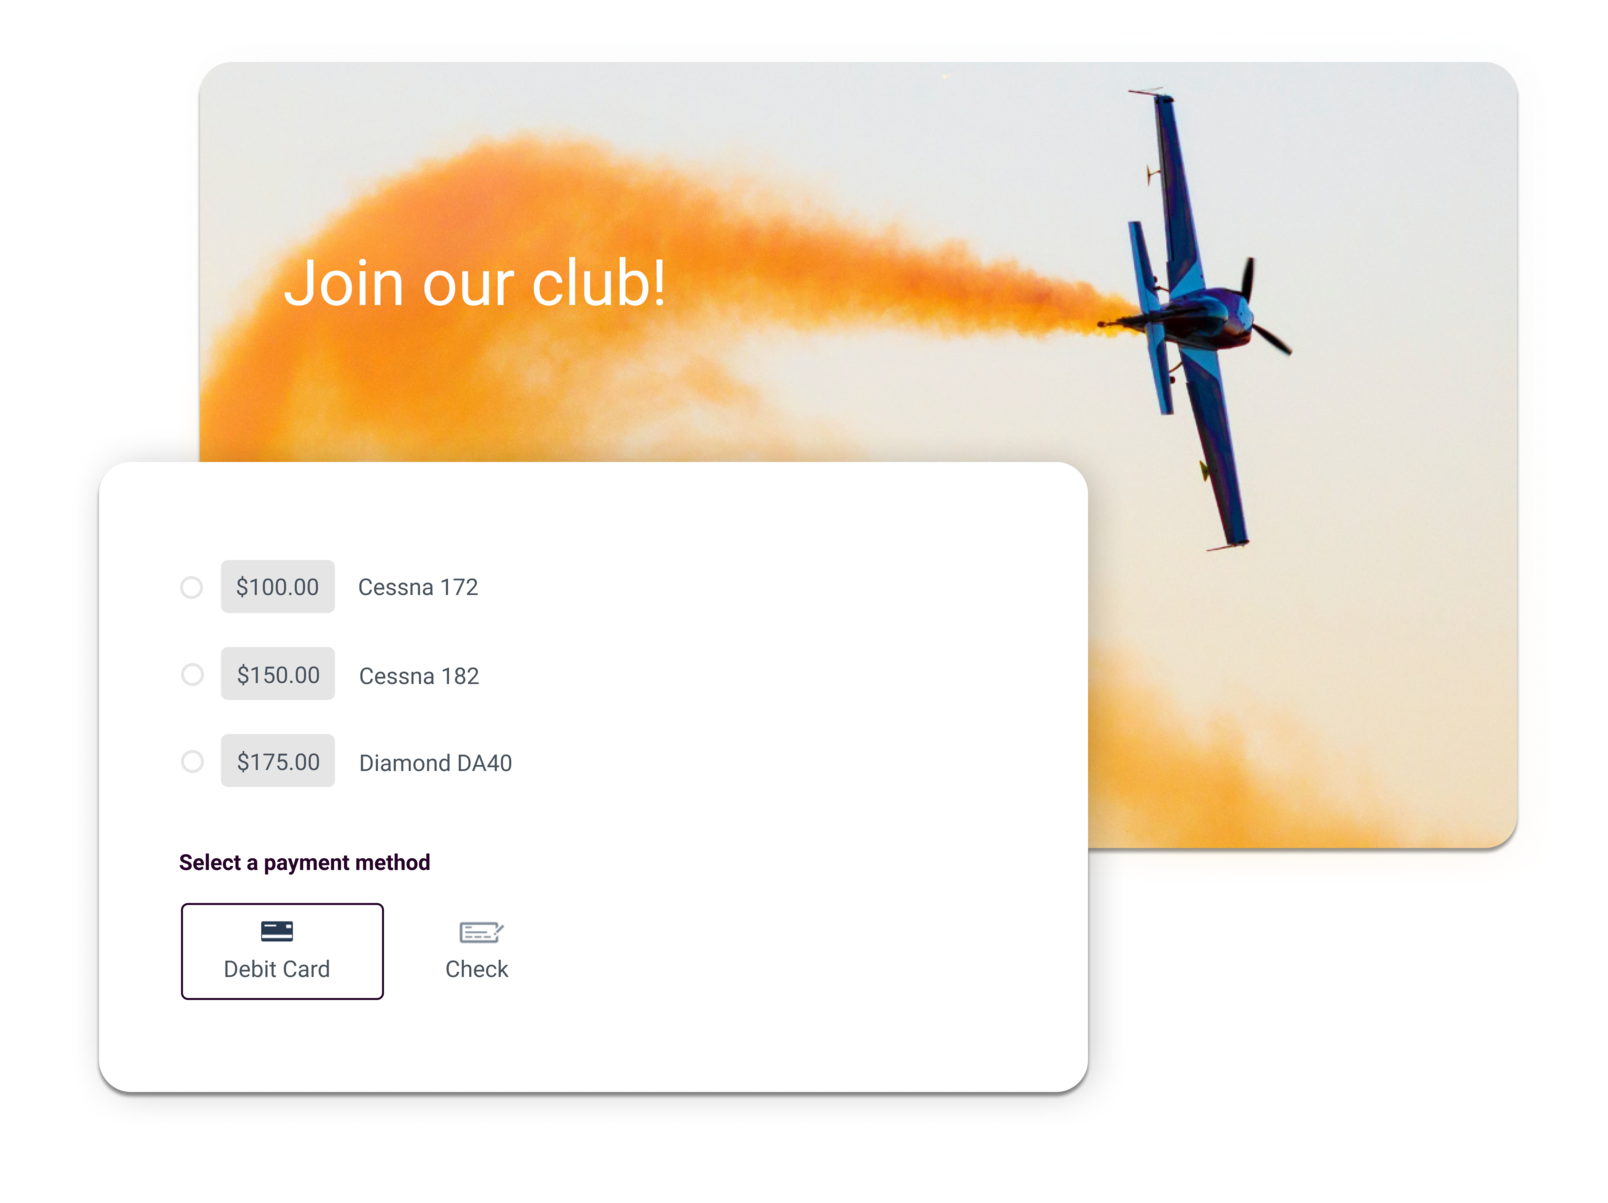 flying club management software summary